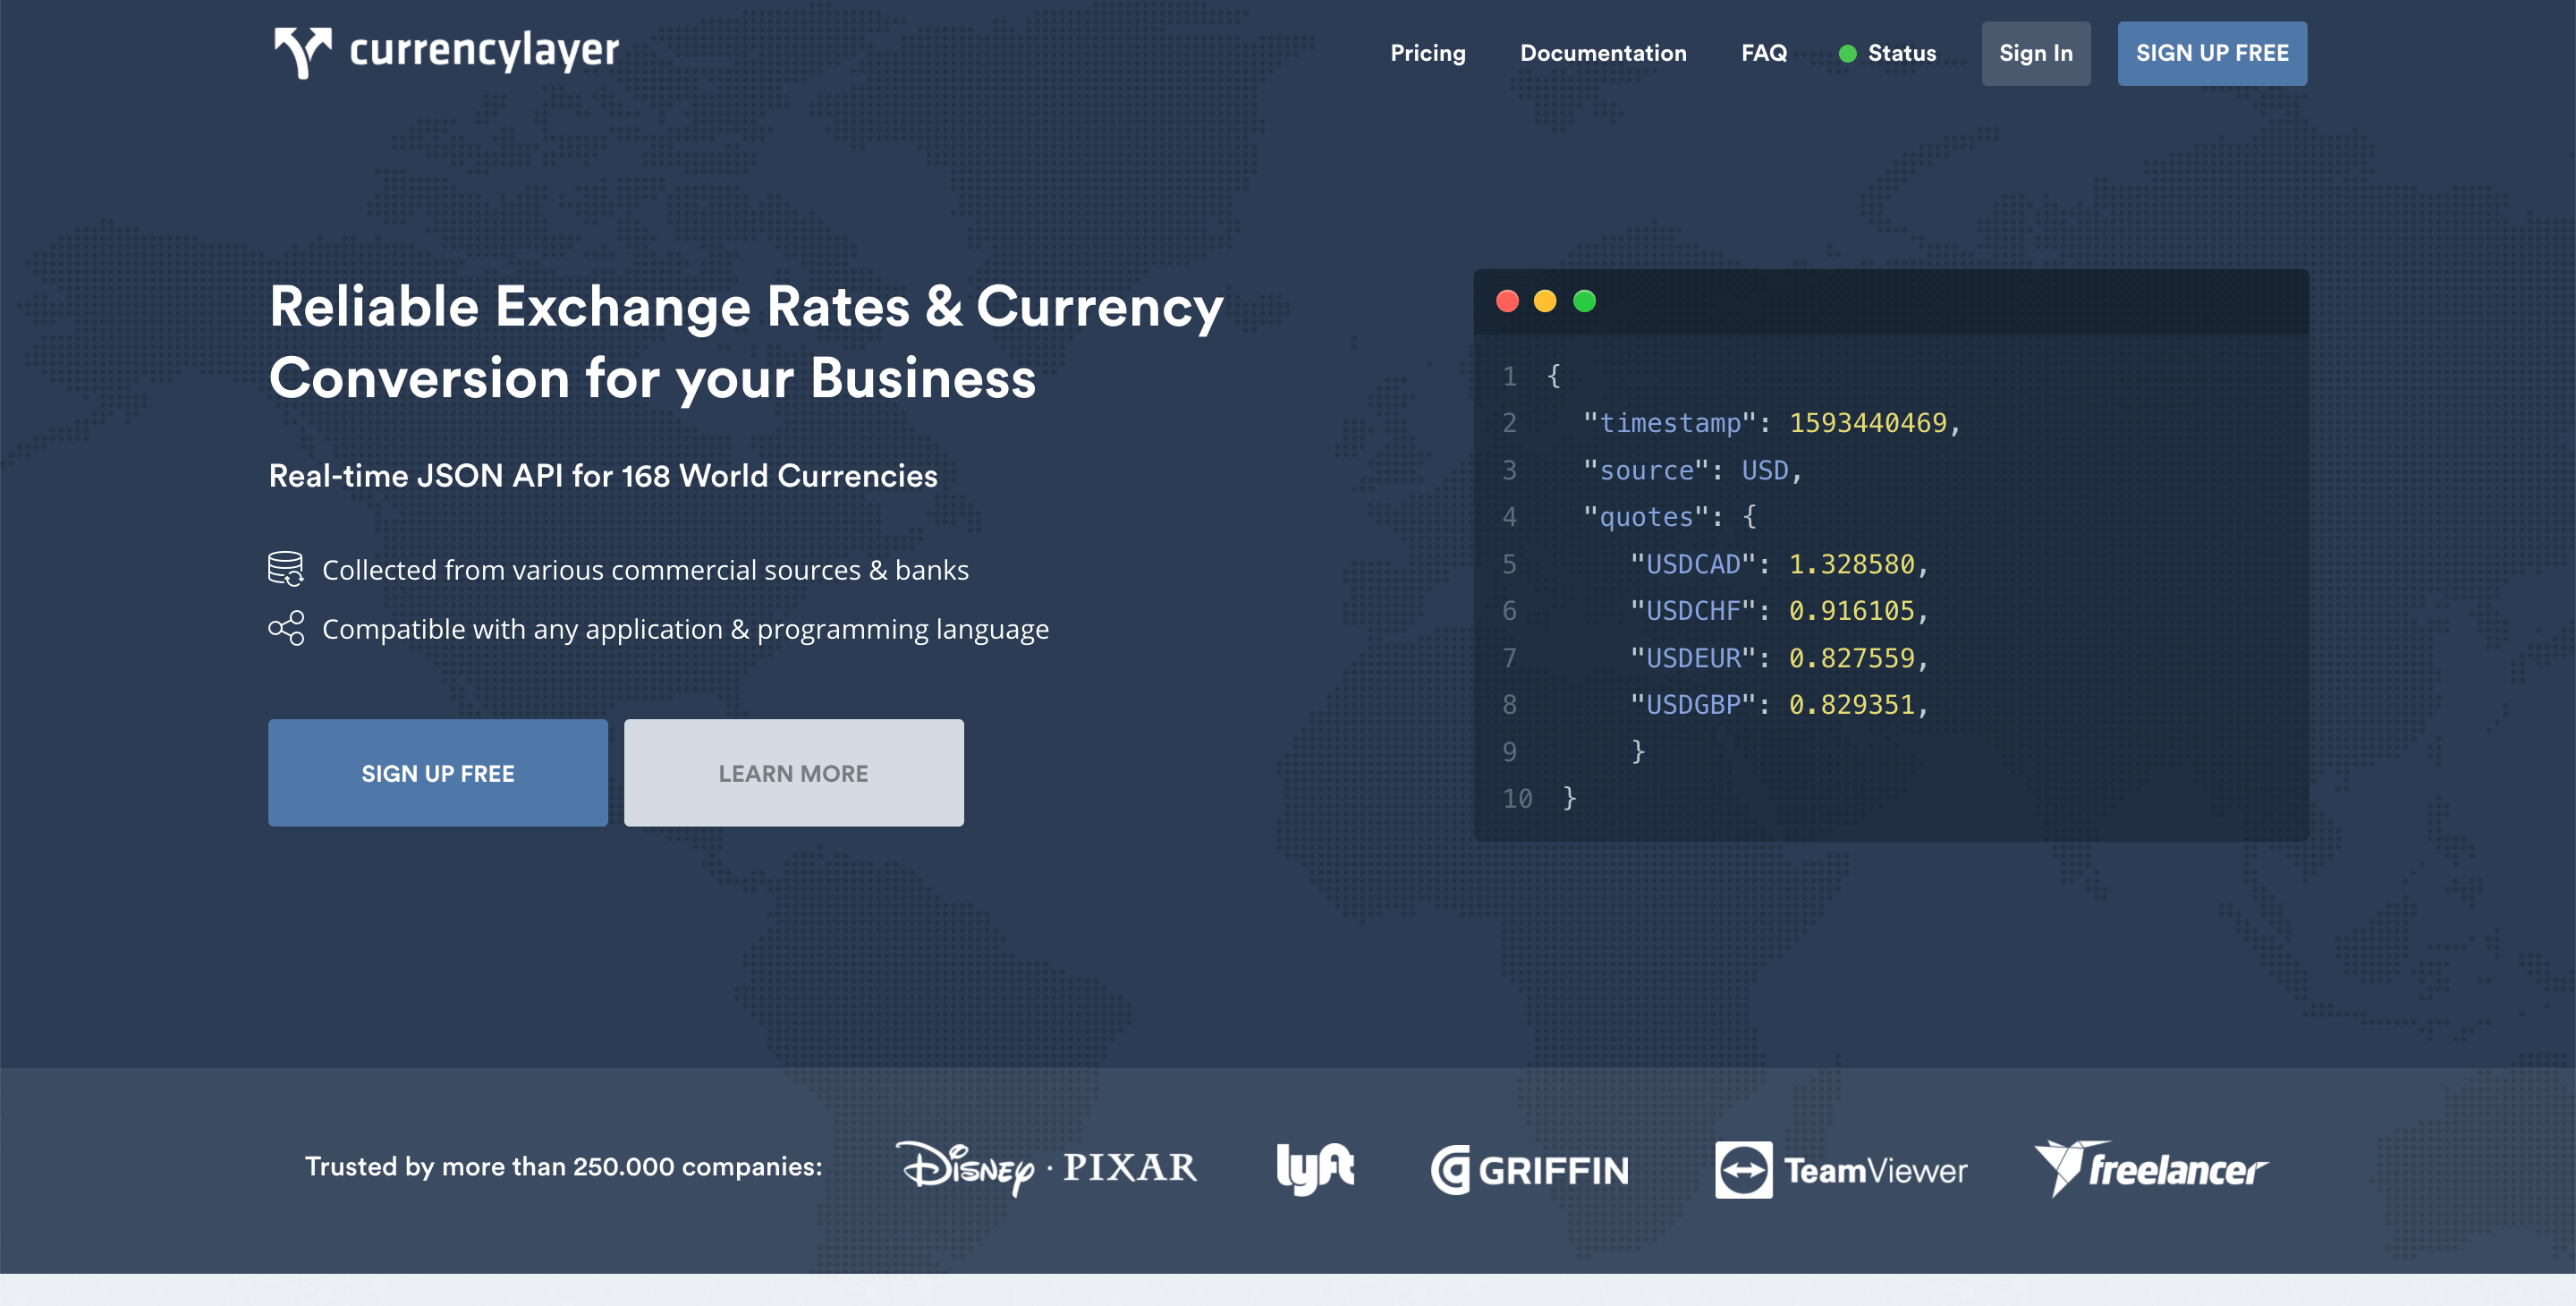 Currencylayer exchange rates API with real-time JSON data for 168 countries8